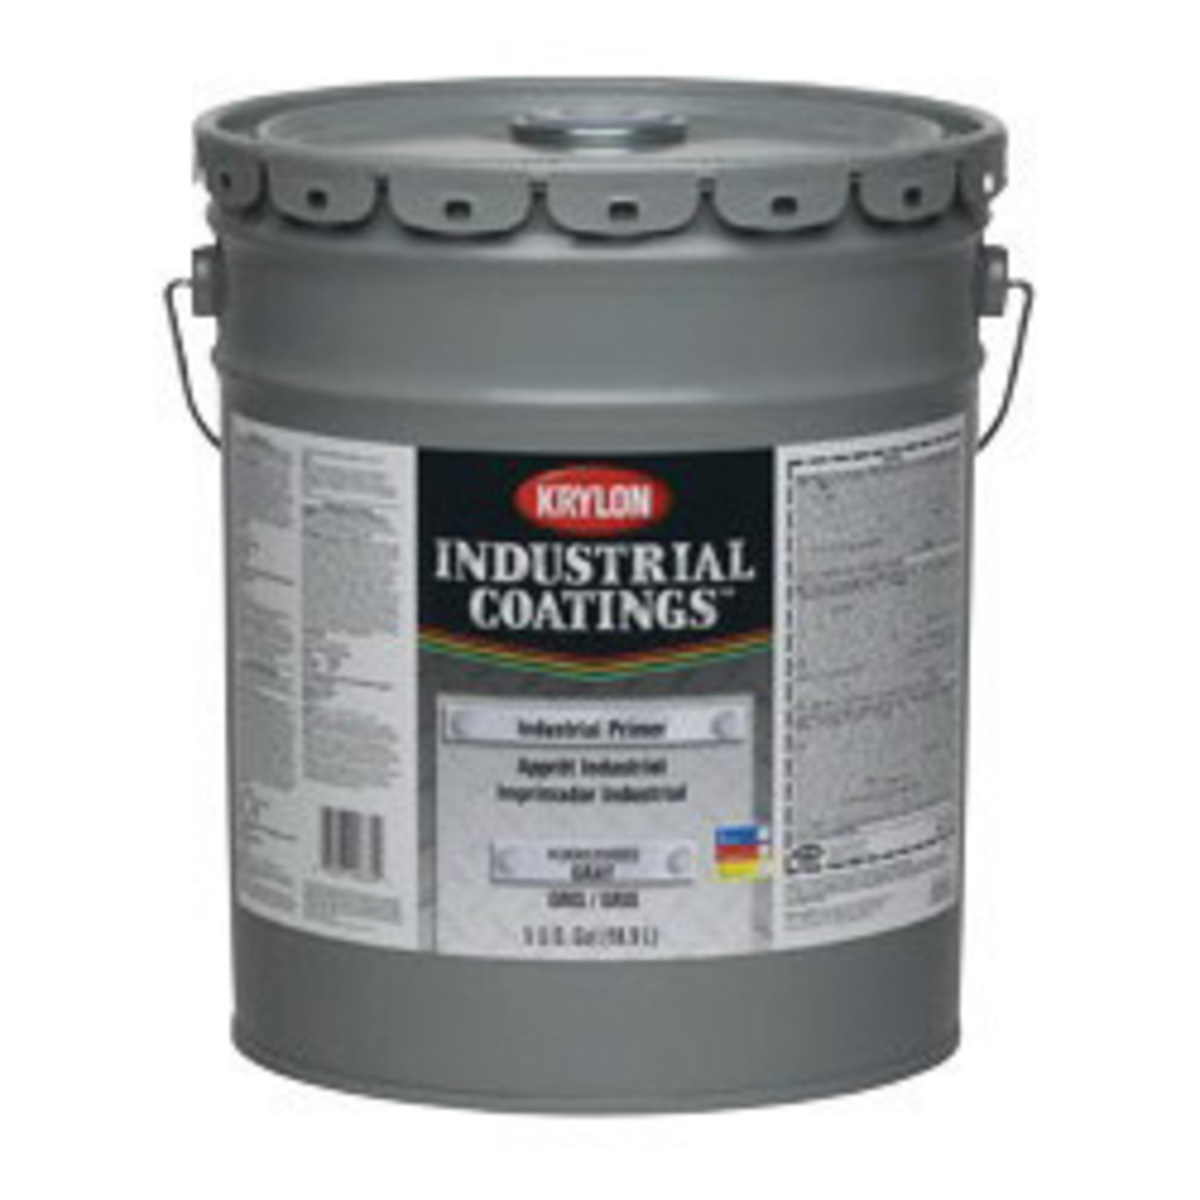 Airgas k04k00020101 20 krylon products group 5 gallon for 5 gallon bucket of paint price